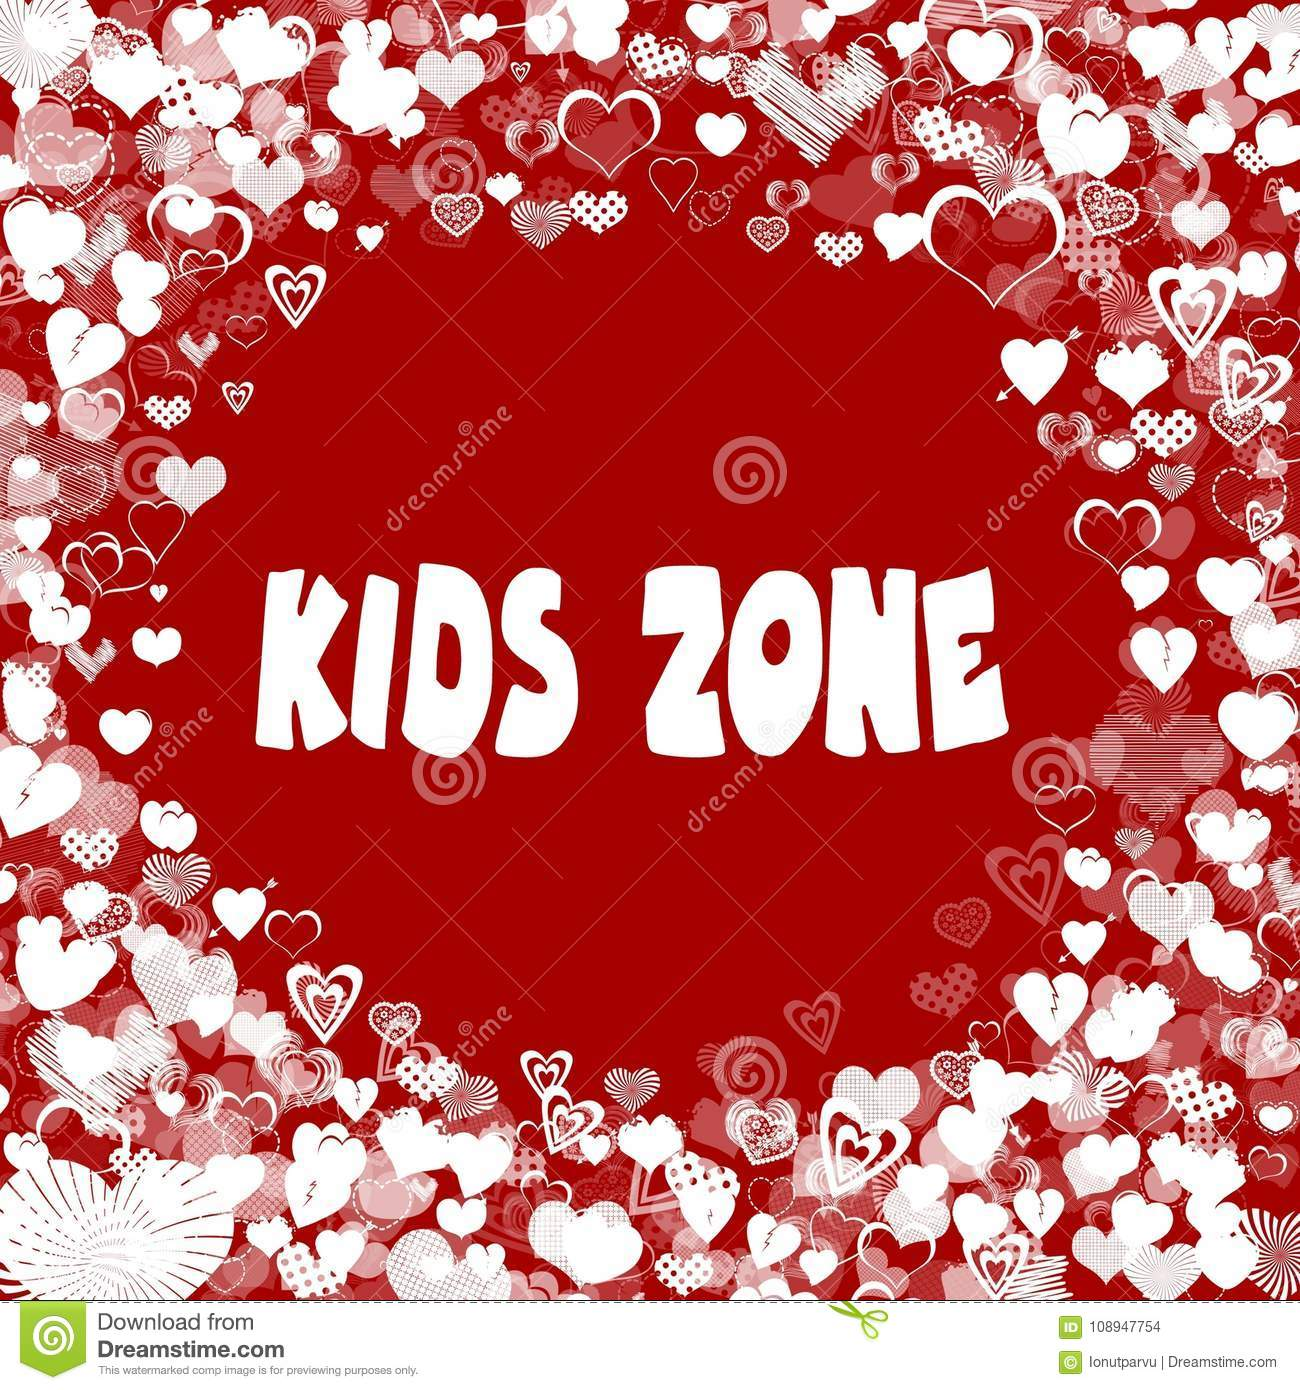 Hearts Frame With Kids Zone Text On Red Background Stock Illustration Illustration Of Type Frame 108947754